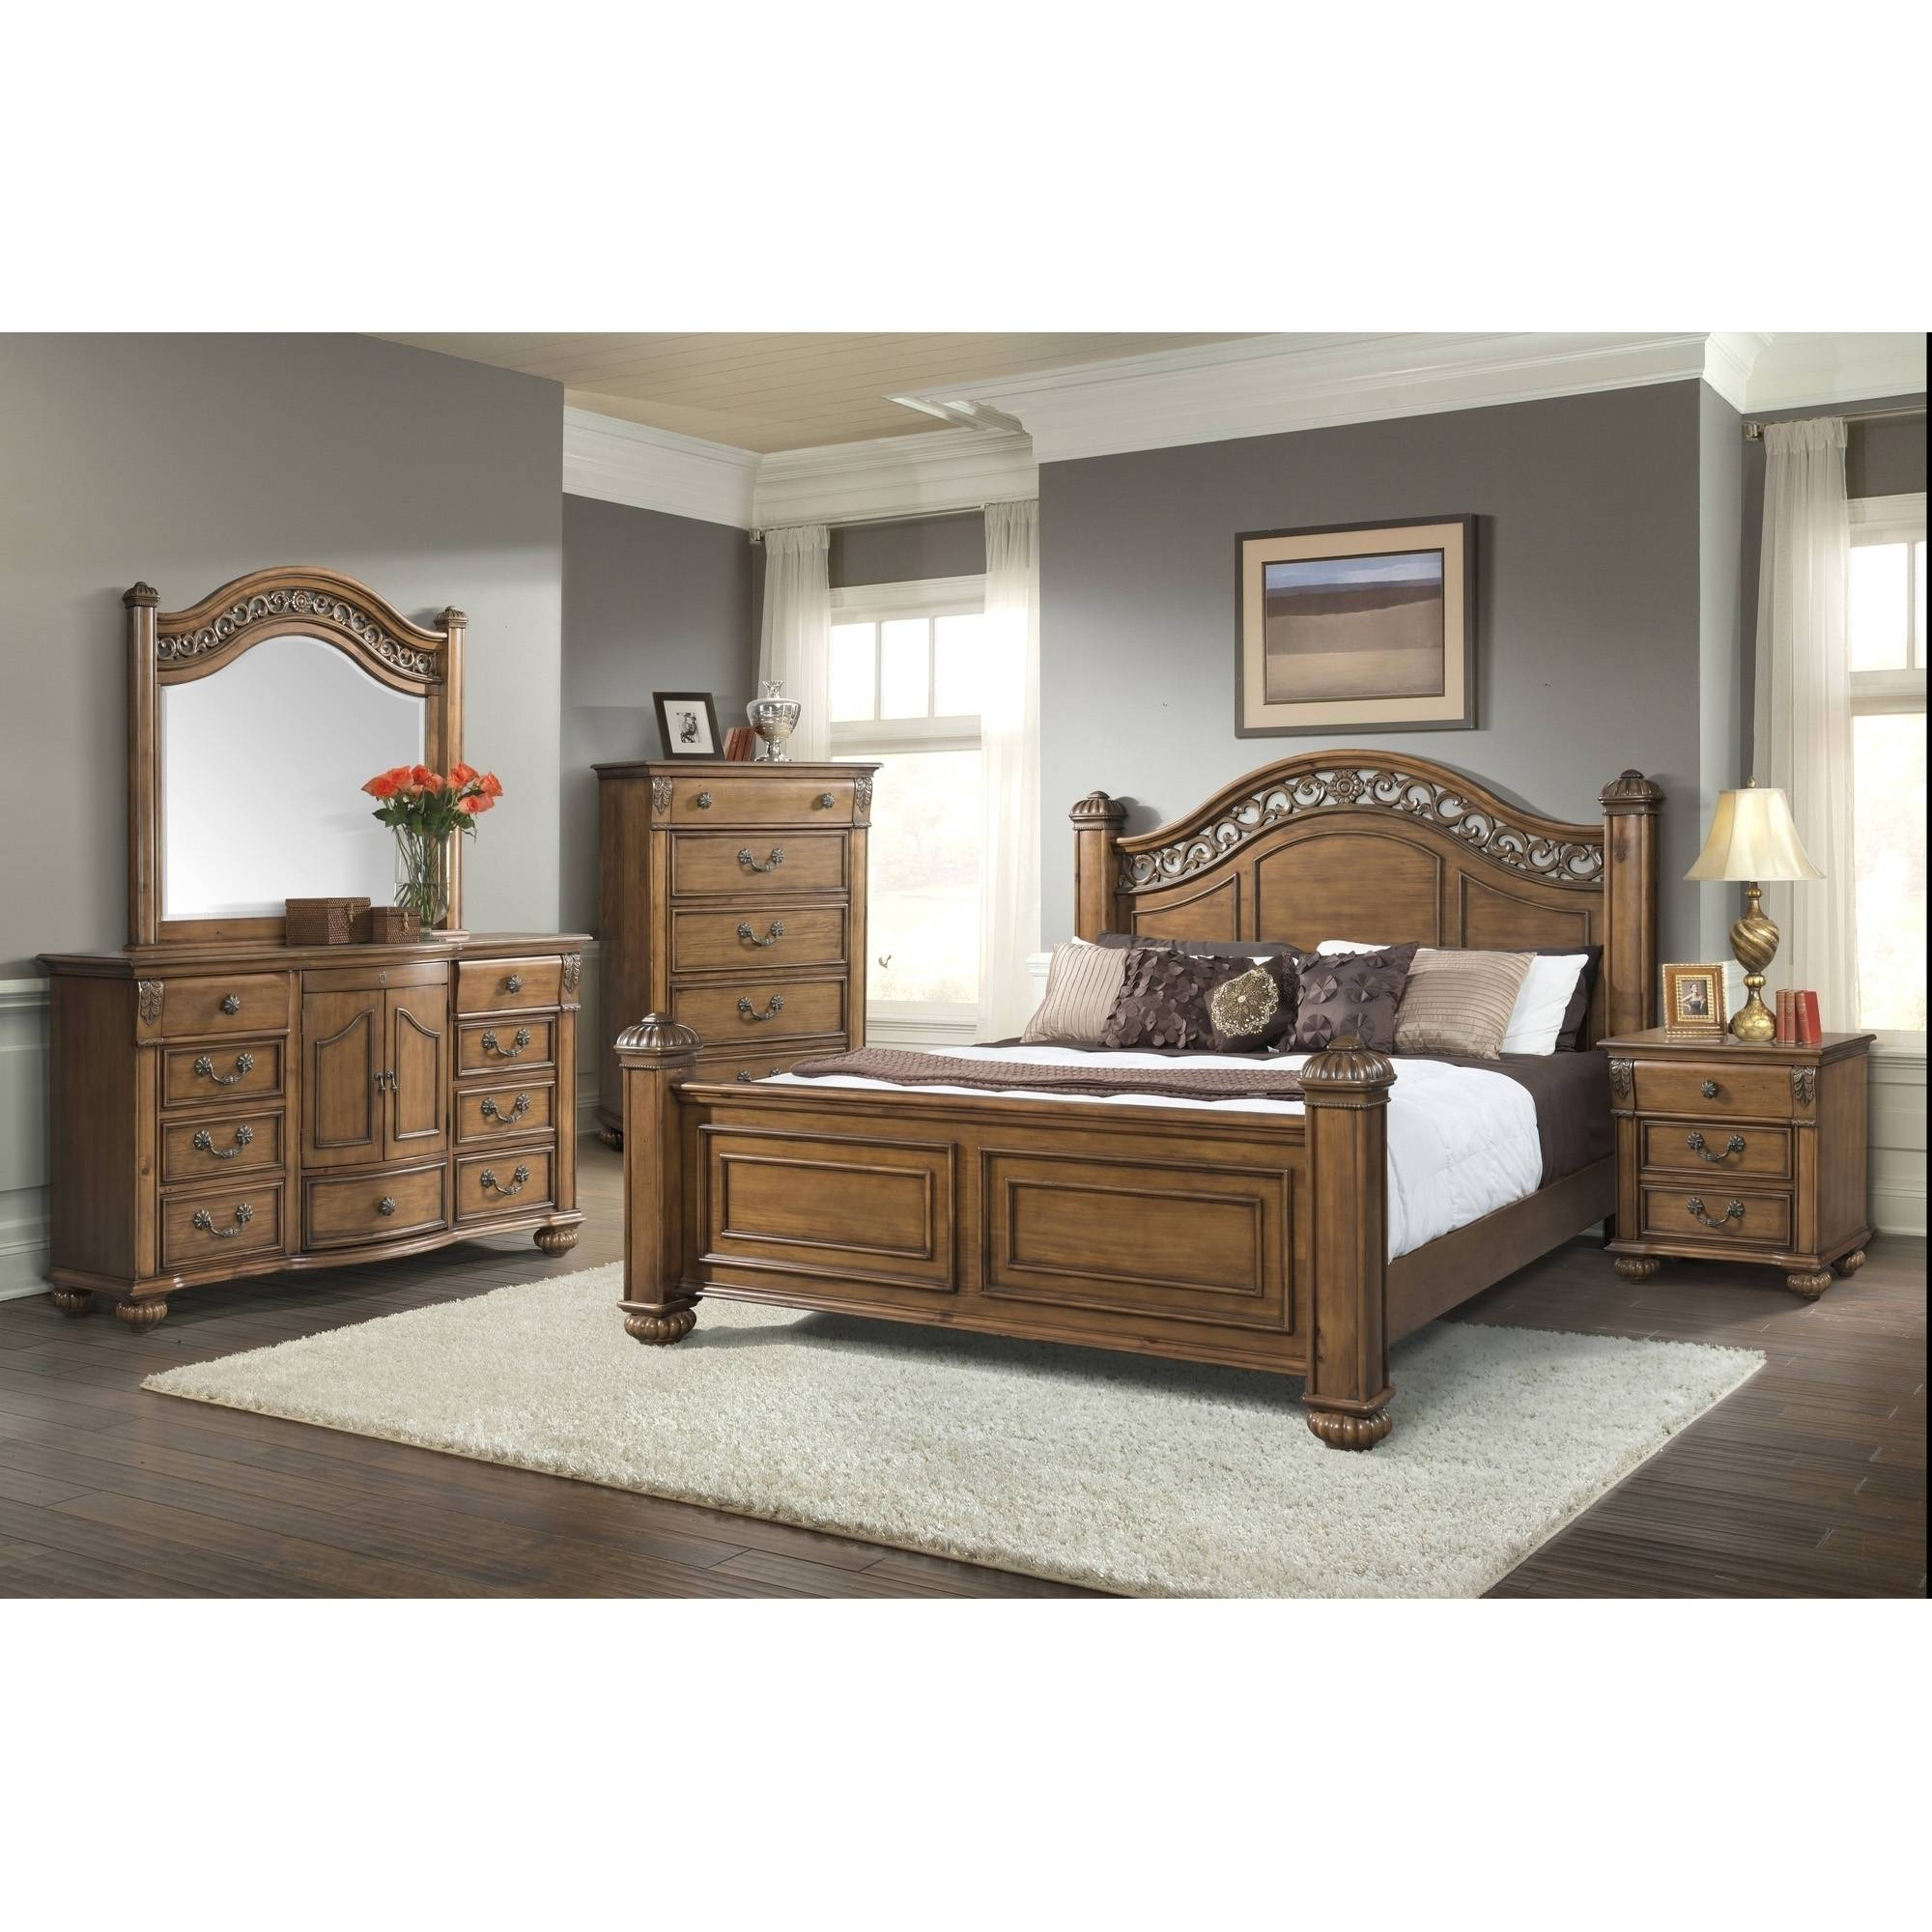 Picket House Furnishings Barrow Poster Bedroom Set, Multiple Sizes and Configurations by